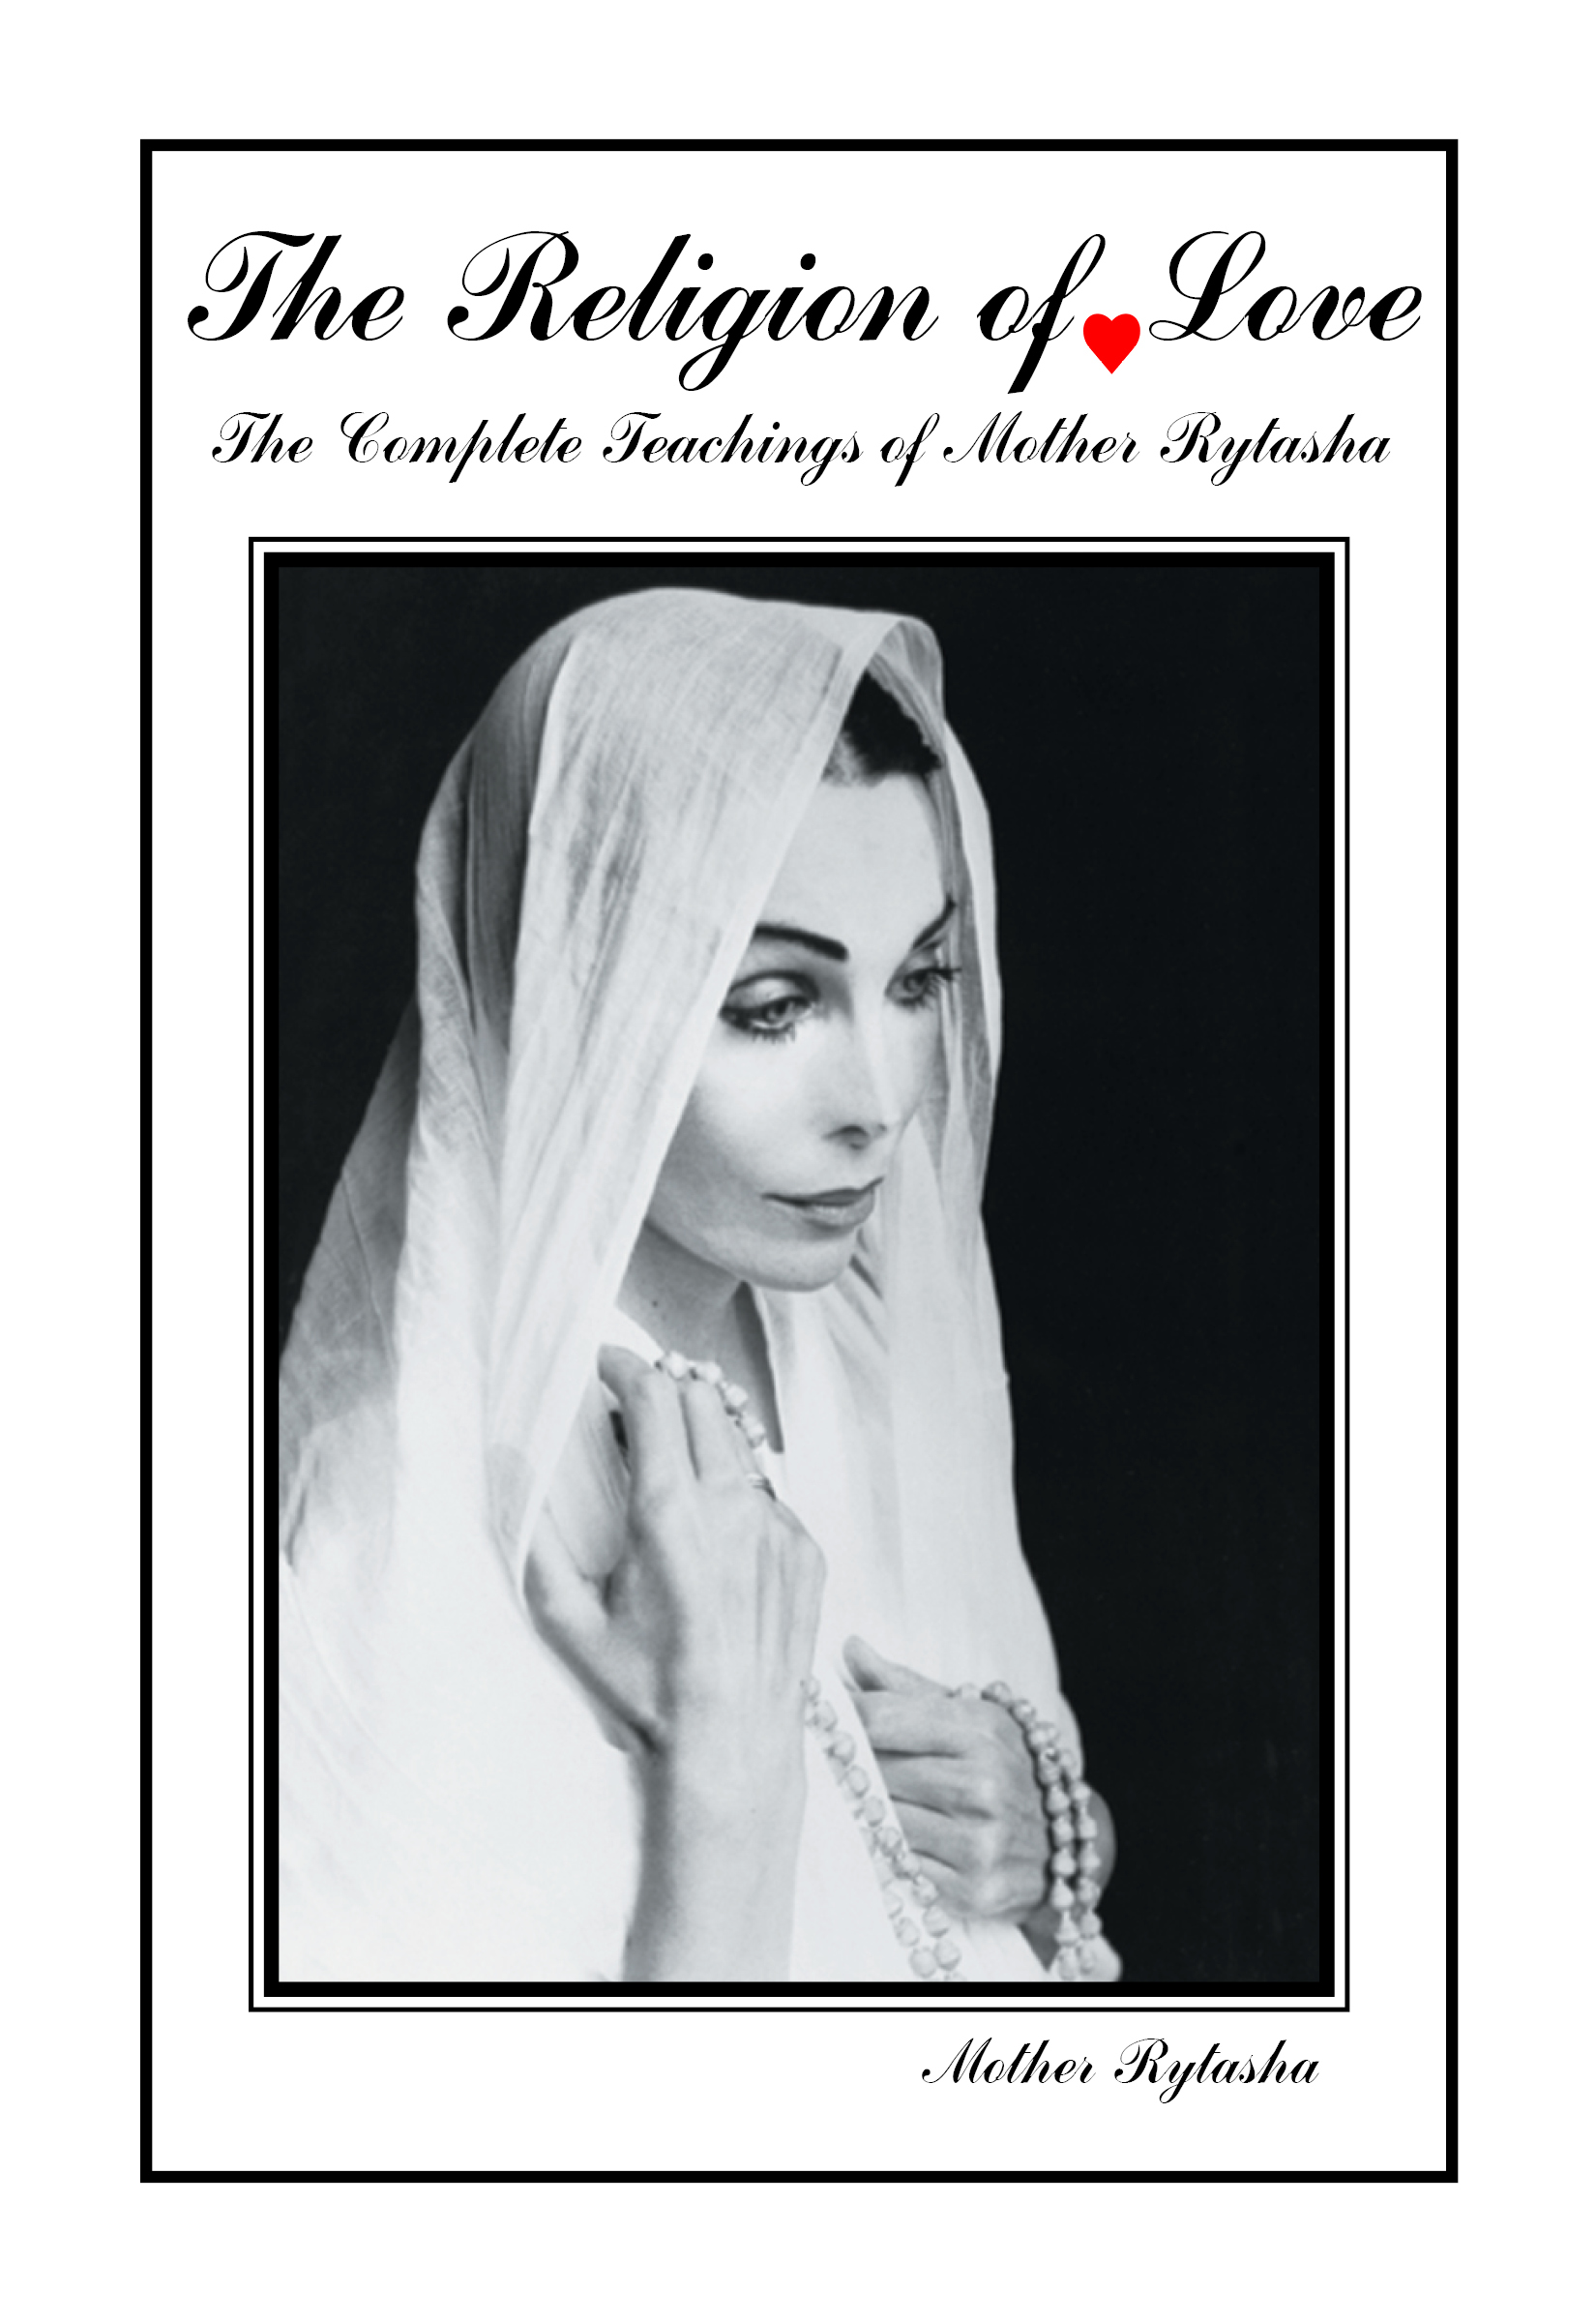 The Religion of Love: The Complete Teachings of Mother Rytasha